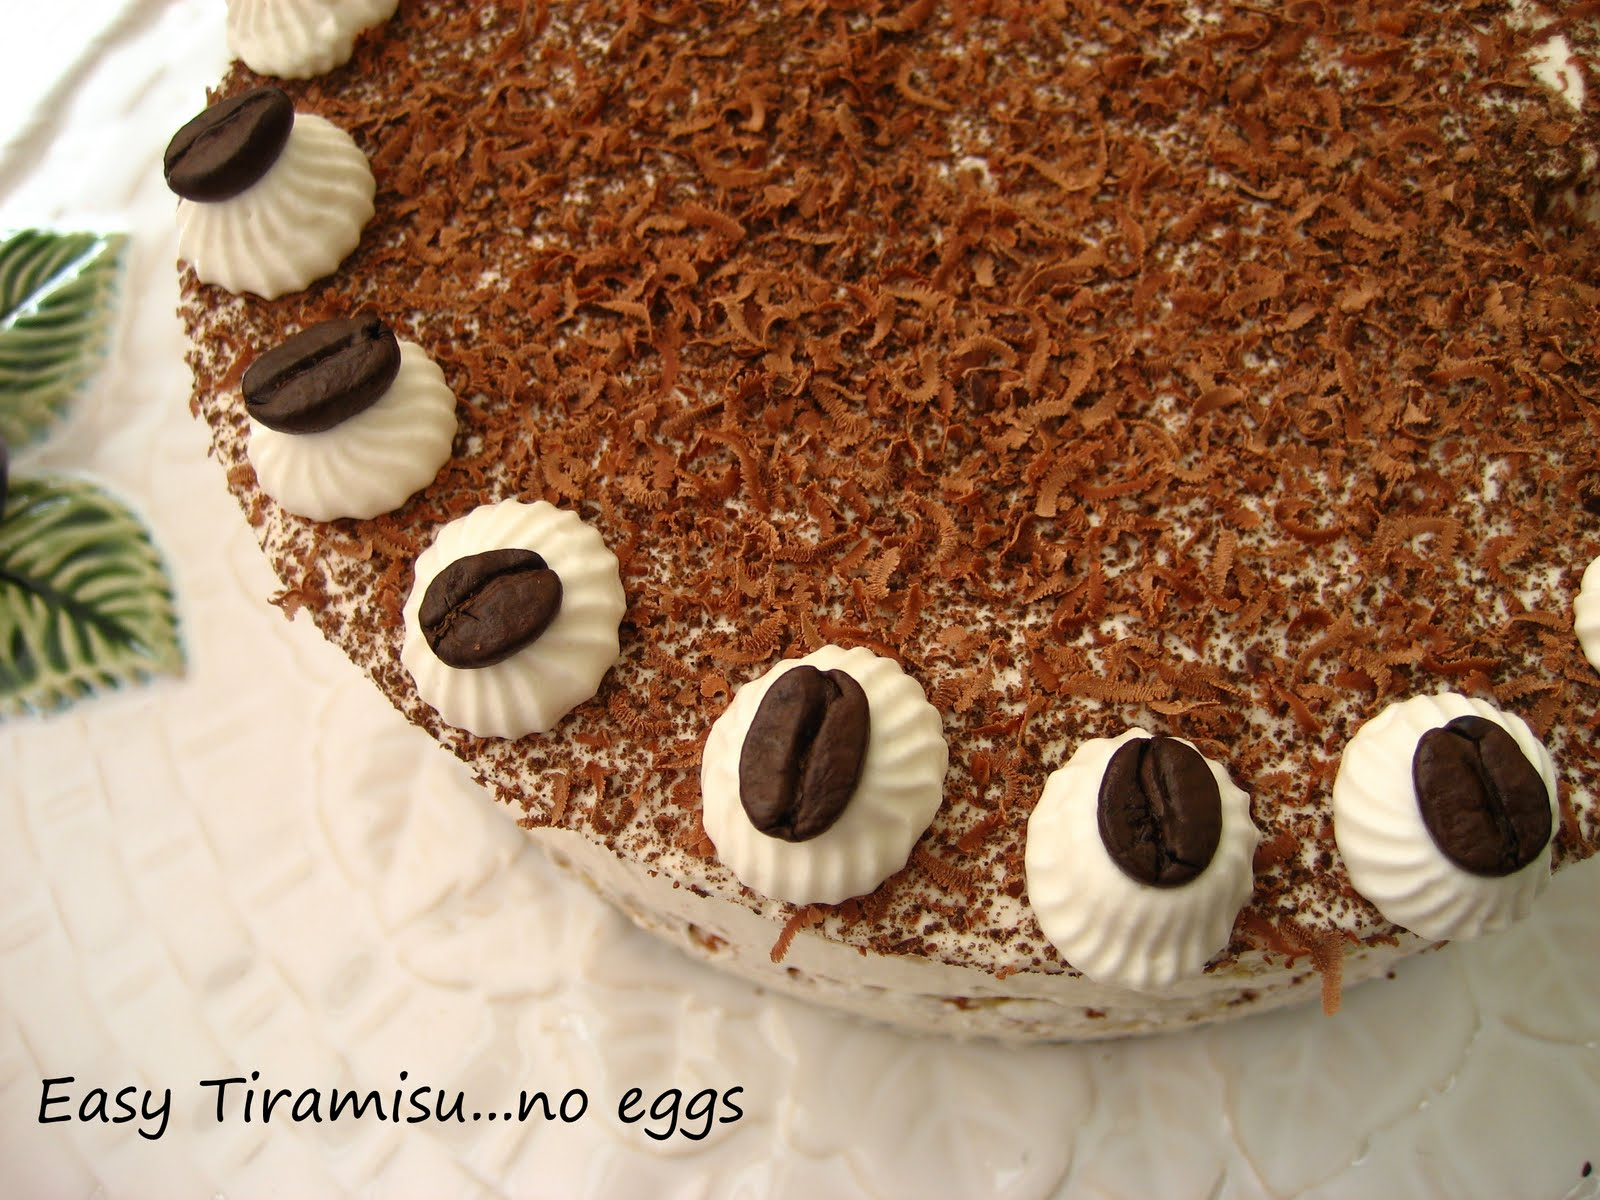 Home cooking in montana easy tiramisu without eggsgordon ramsay easy tiramisu without eggsgordon ramsay adaptation forumfinder Gallery